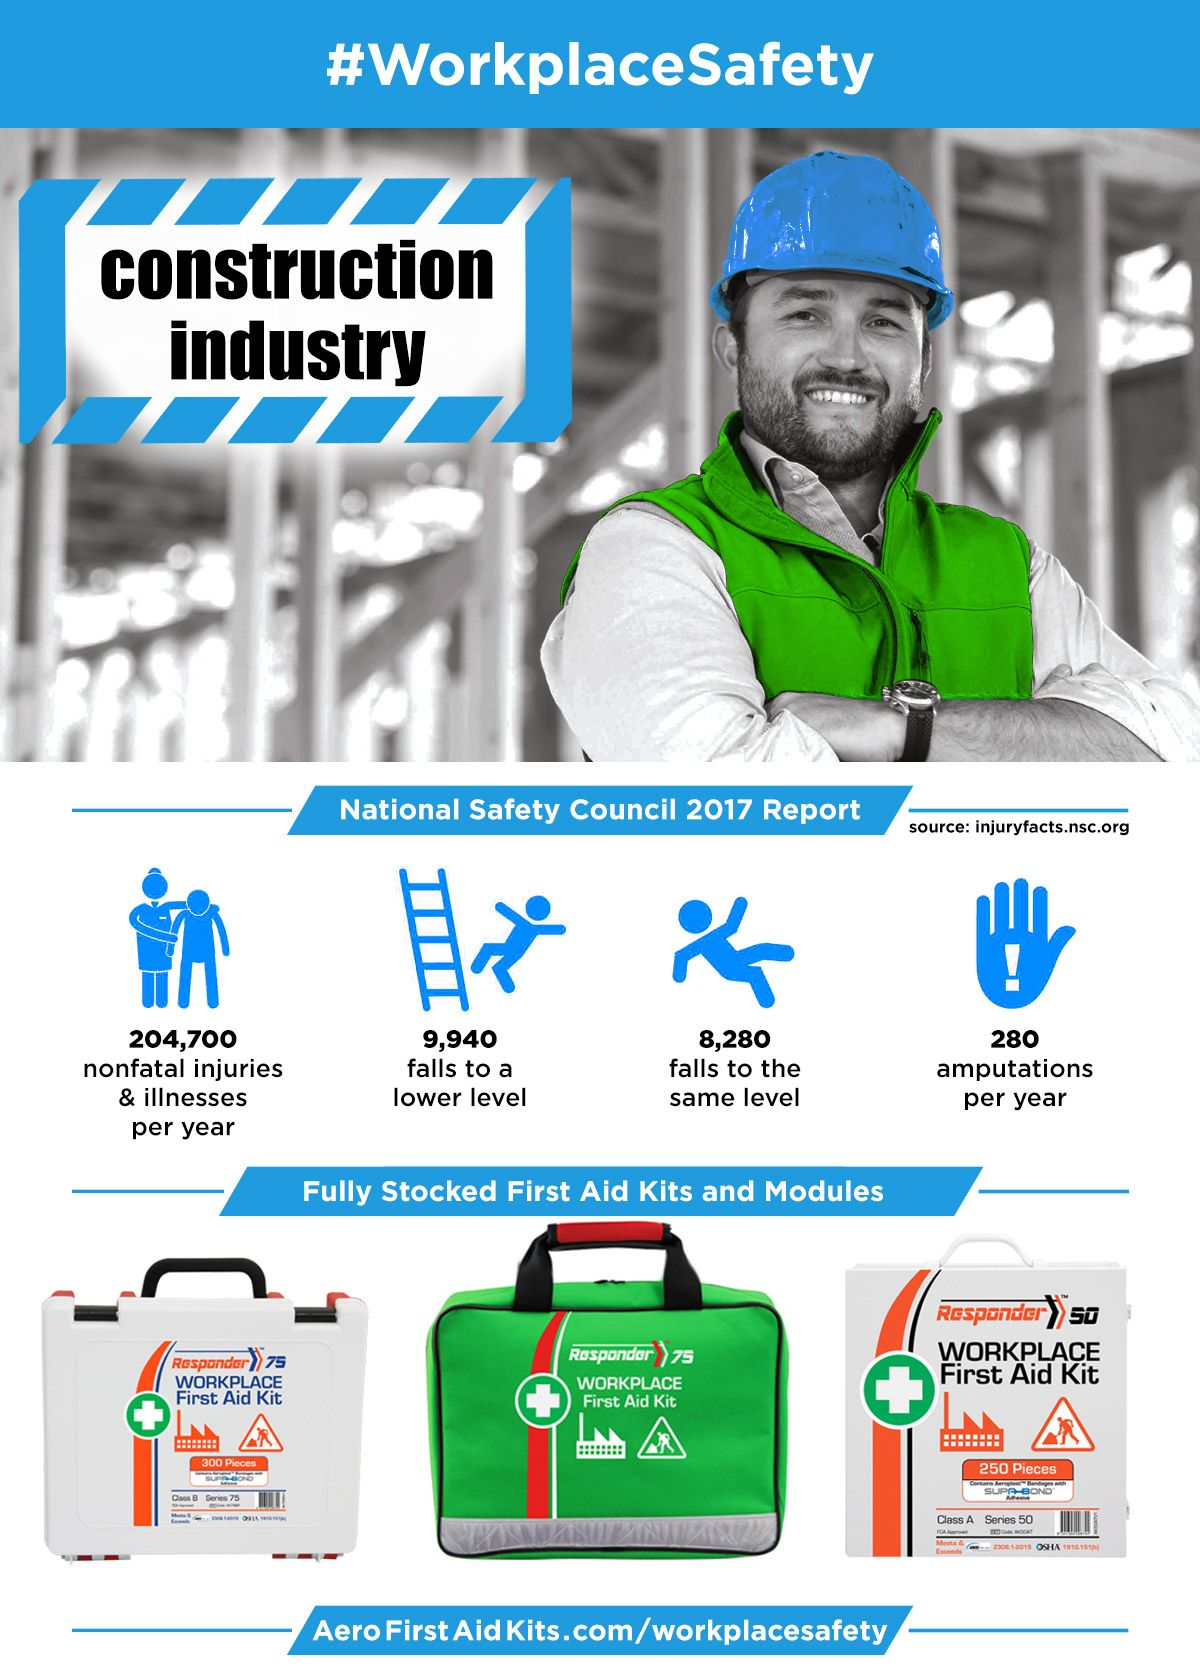 Workplace Safety Construction Industry First Aid Kits